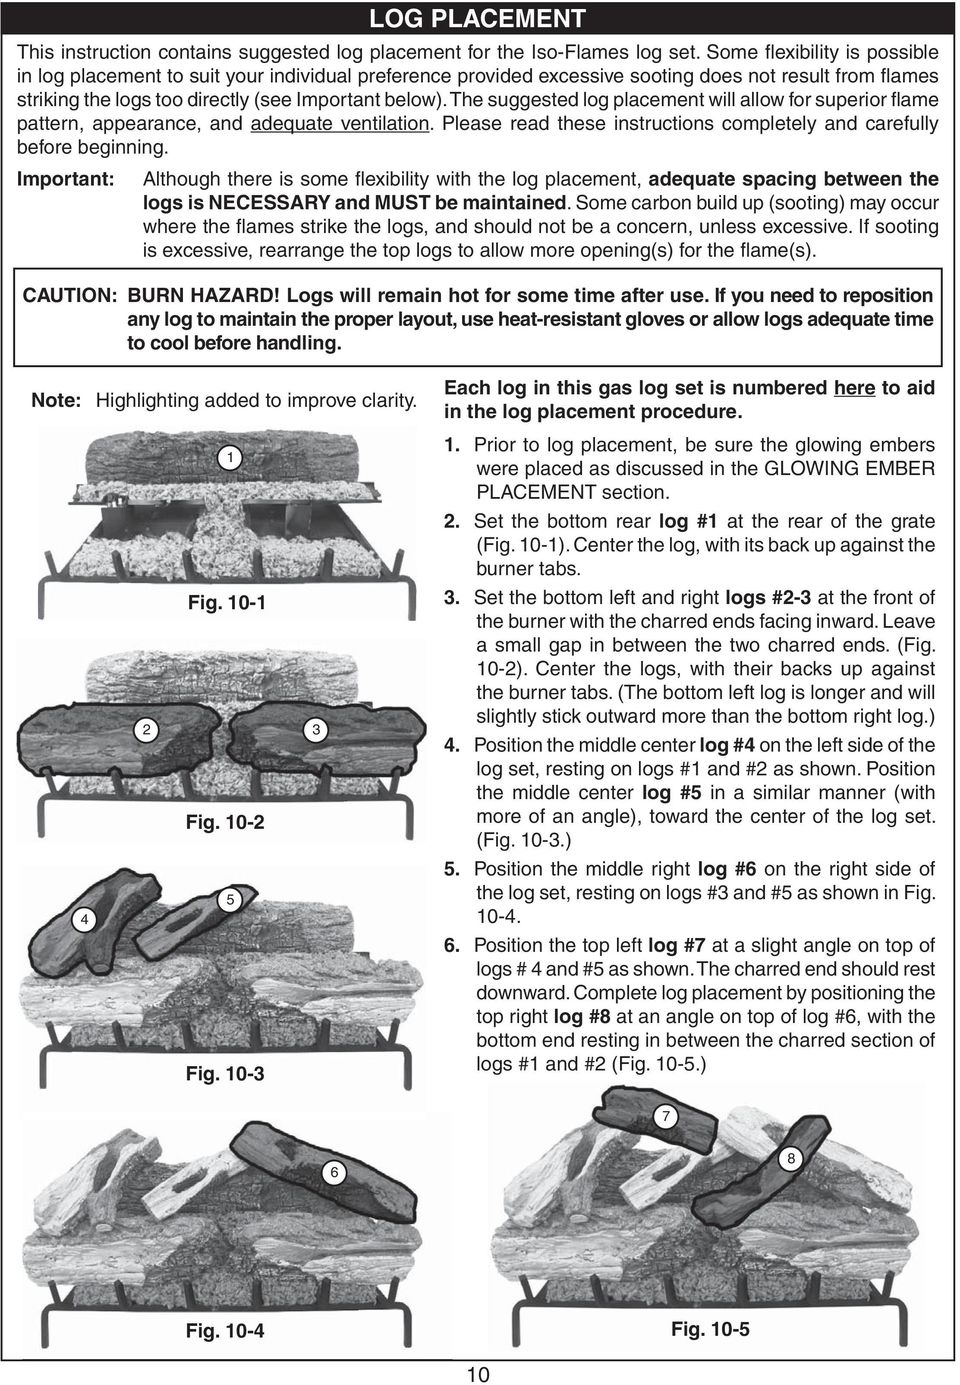 The suggested log placement will allow for superior flame pattern, appearance, and adequate ventilation. Please read these instructions completely and carefully before beginning.